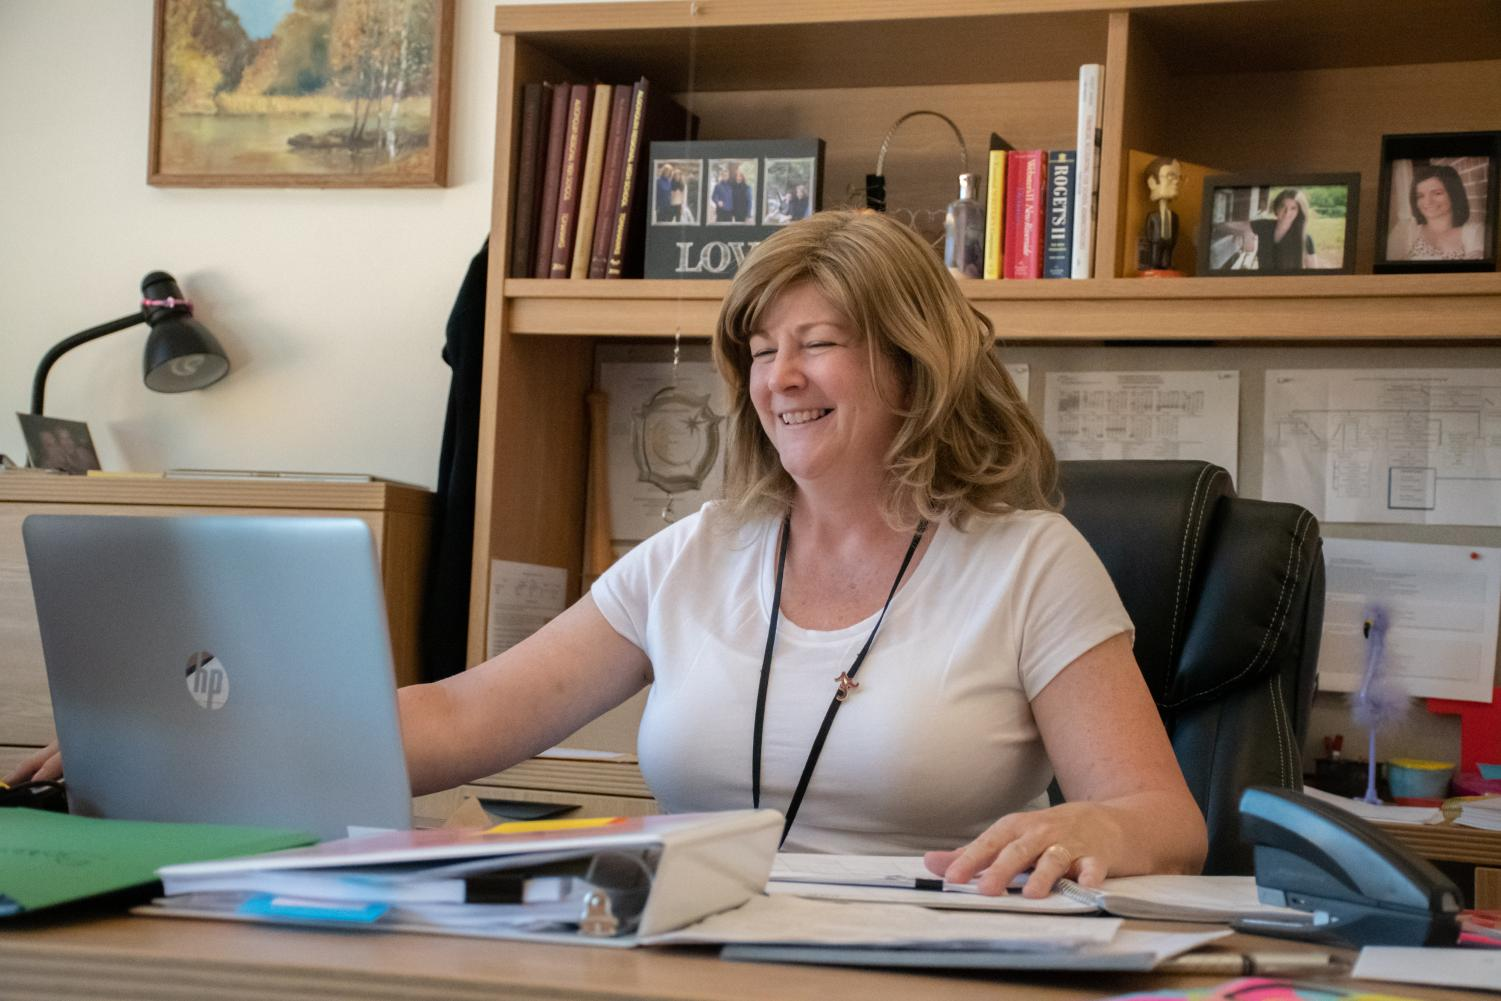 Assistant Principal Michele Tontodonato works at her computer as the school year wraps up. She will be assuming a position as Director of Finance and Operations at a different school on July 1.